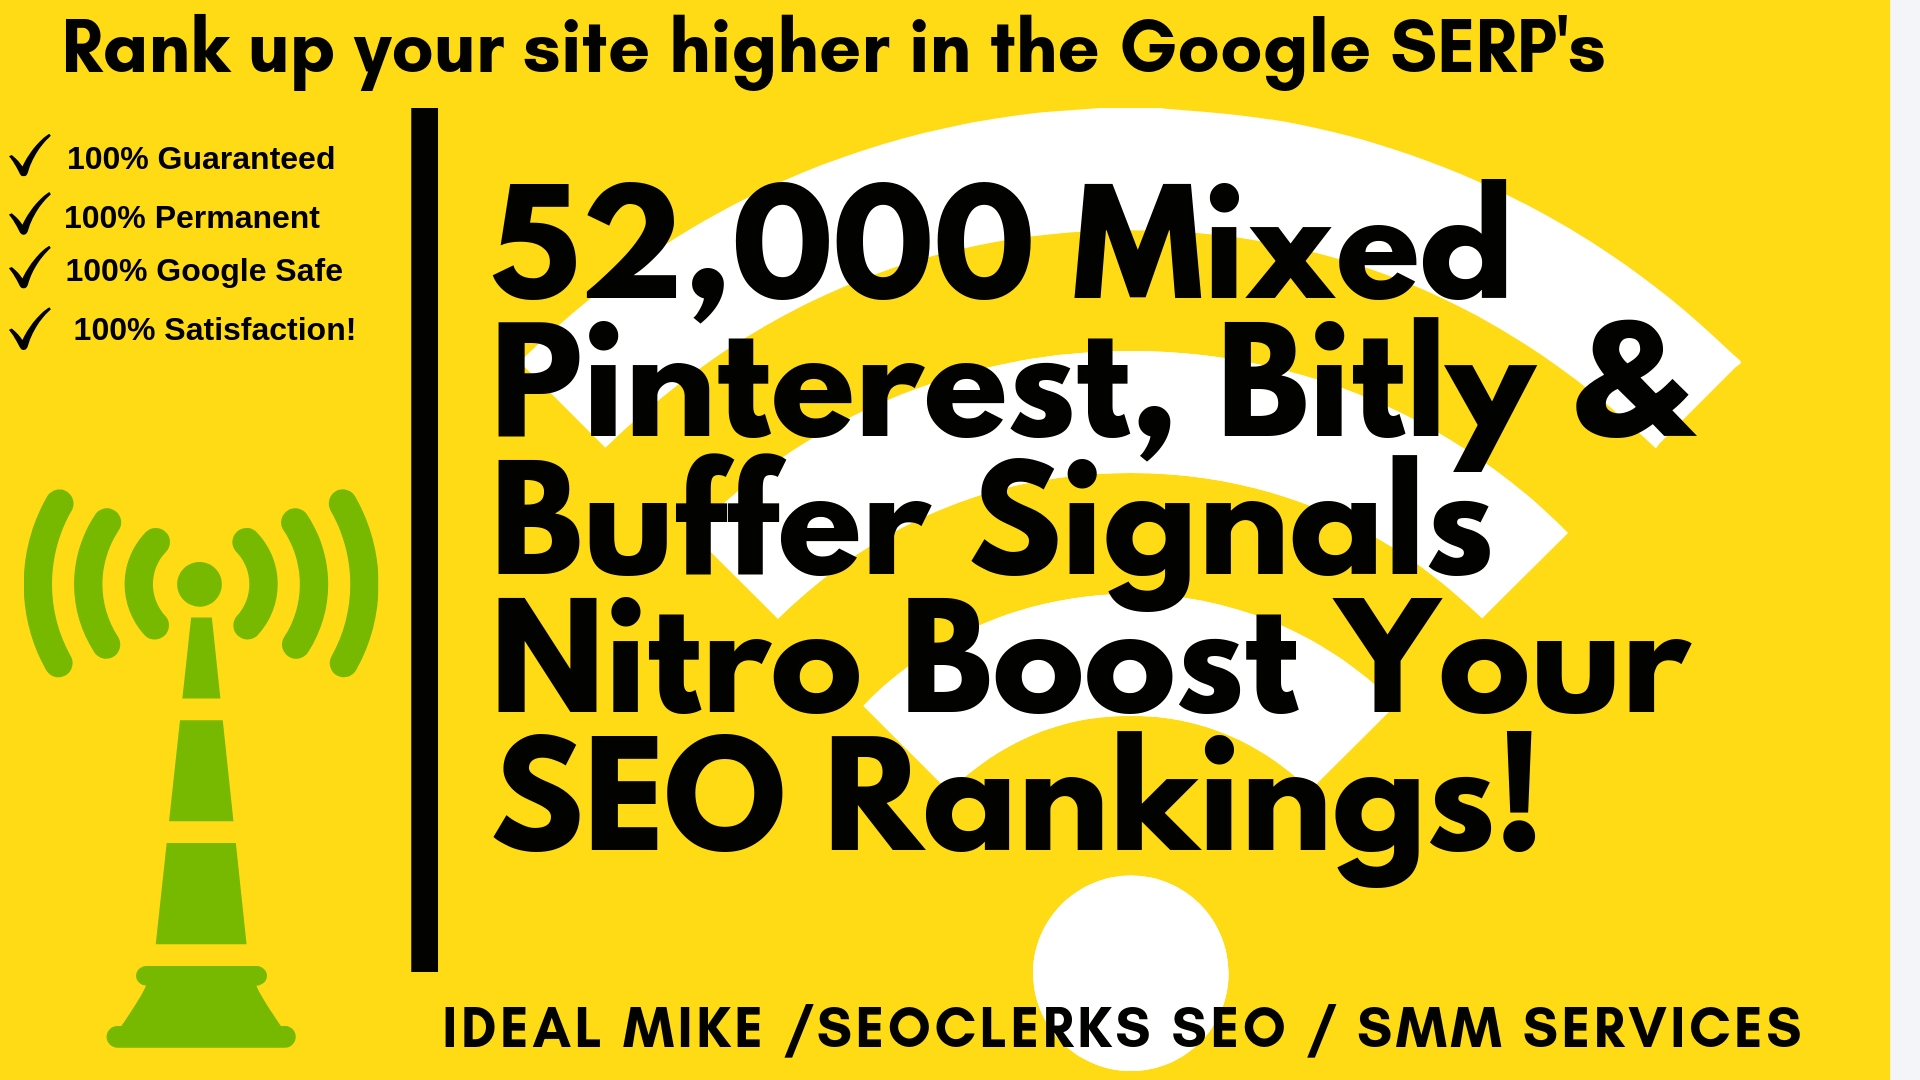 52,000 Mixed Pinterest Bitly & Buffer Social Signals Nitro Boost Your SEO Rankings